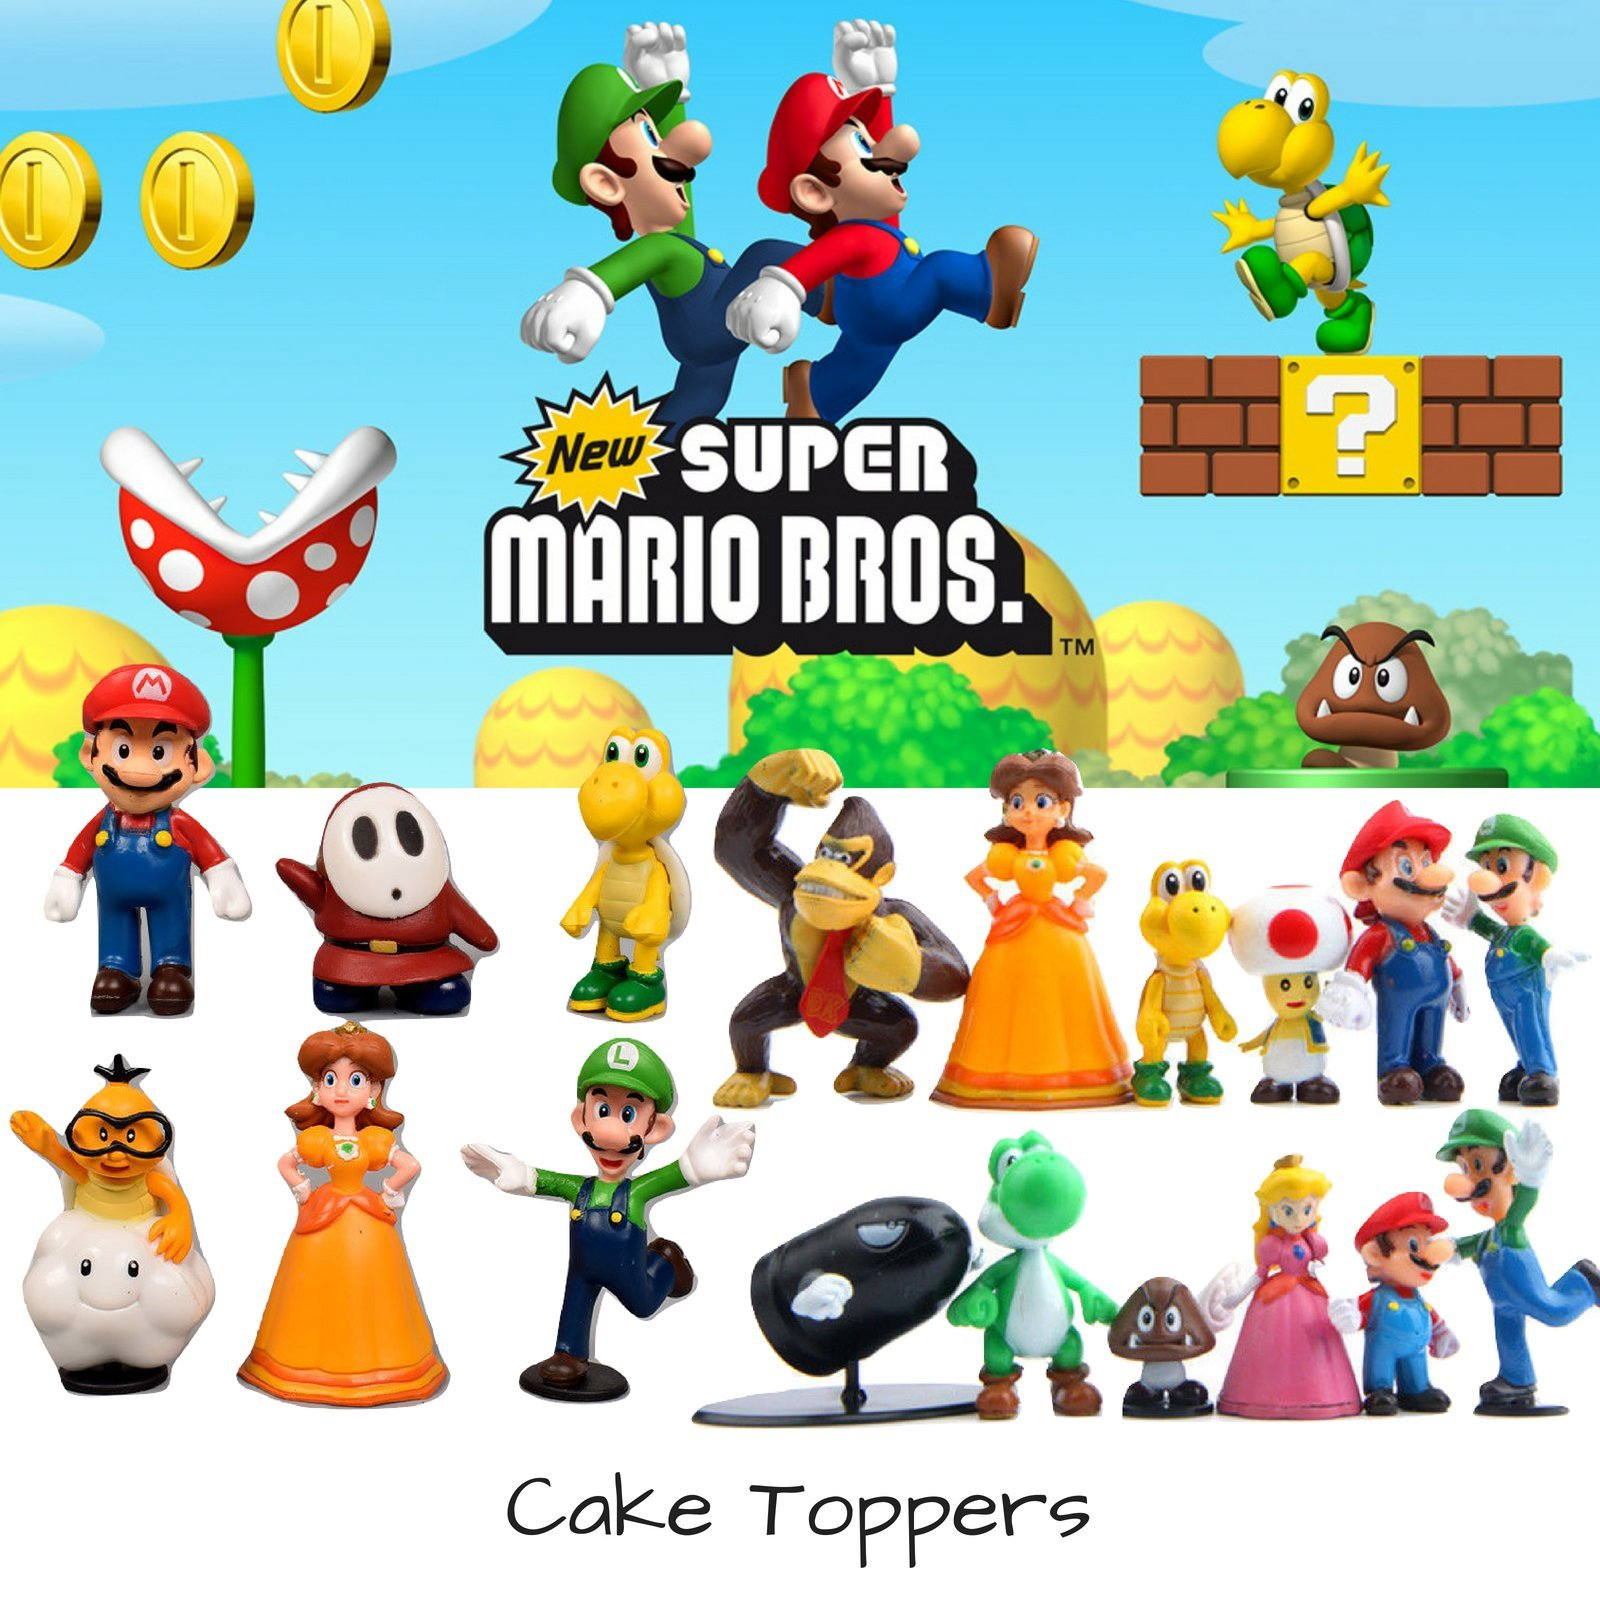 Super Mario Brothers Cake Topper   18 Piece Action Figures